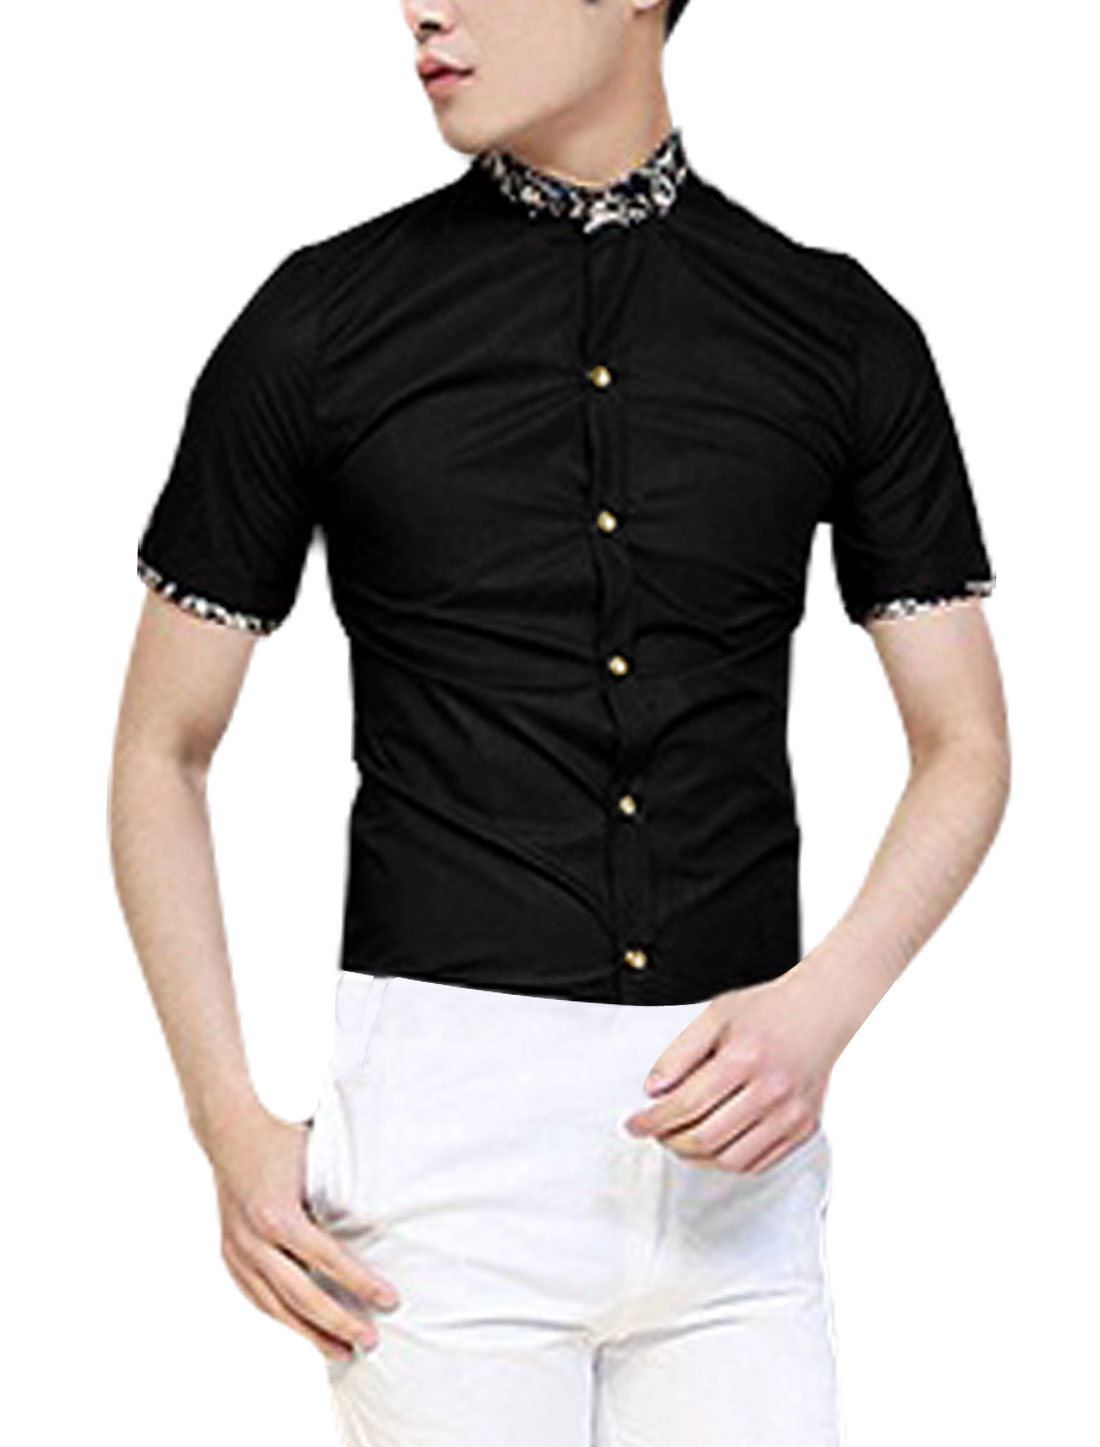 Men Point Collar Short Sleeve Button Up Shirt Black S